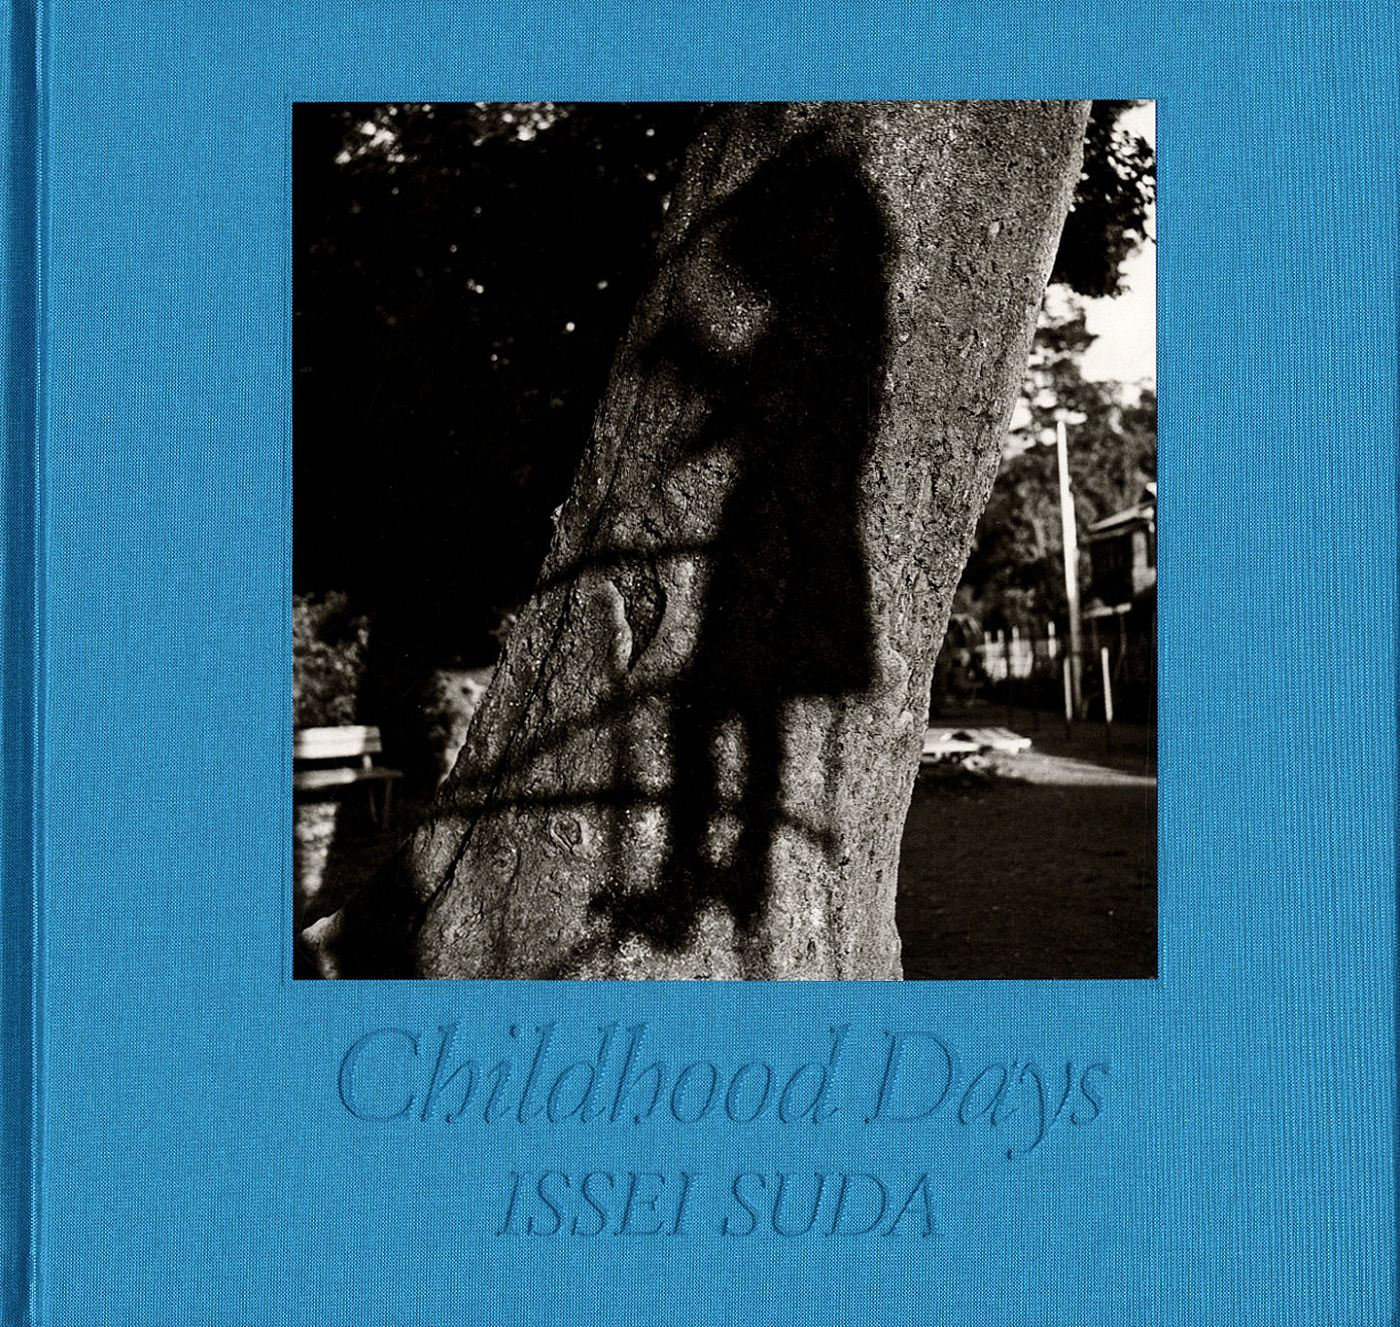 Issei Suda: Childhood Days (Cover Variant A), Limited Edition [SIGNED]